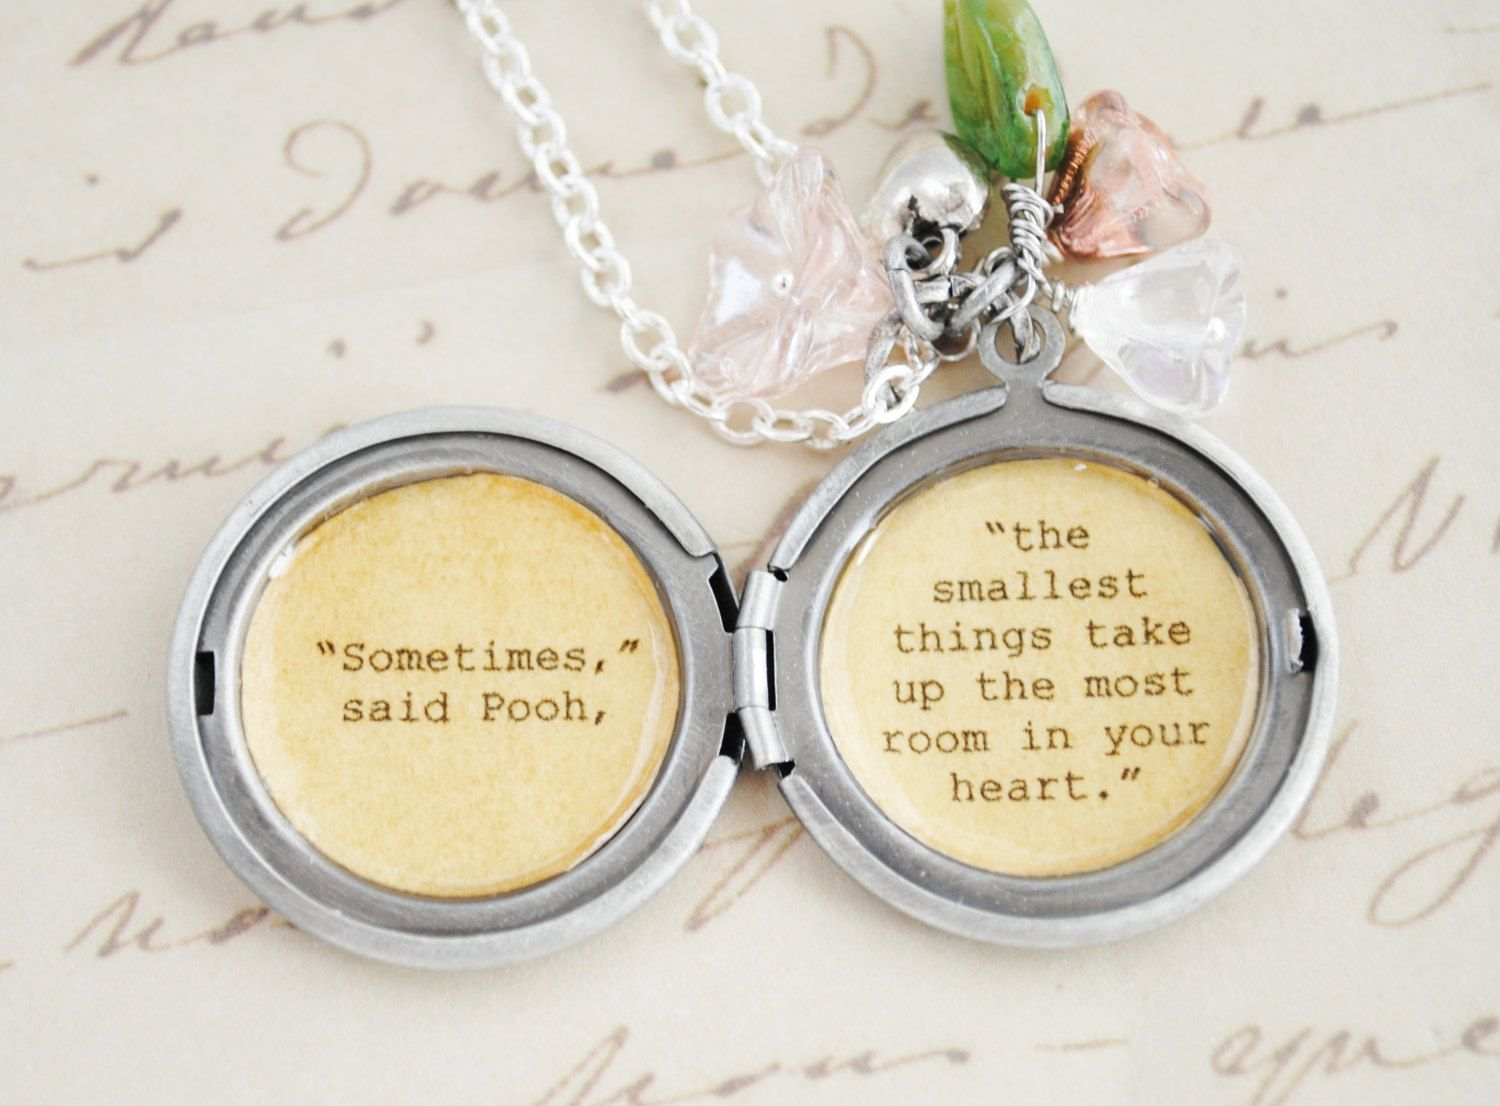 Winnie The Pooh Quote About Friendship Women's Locket  Friendship Jewelry  Winnie The Pooh Quote